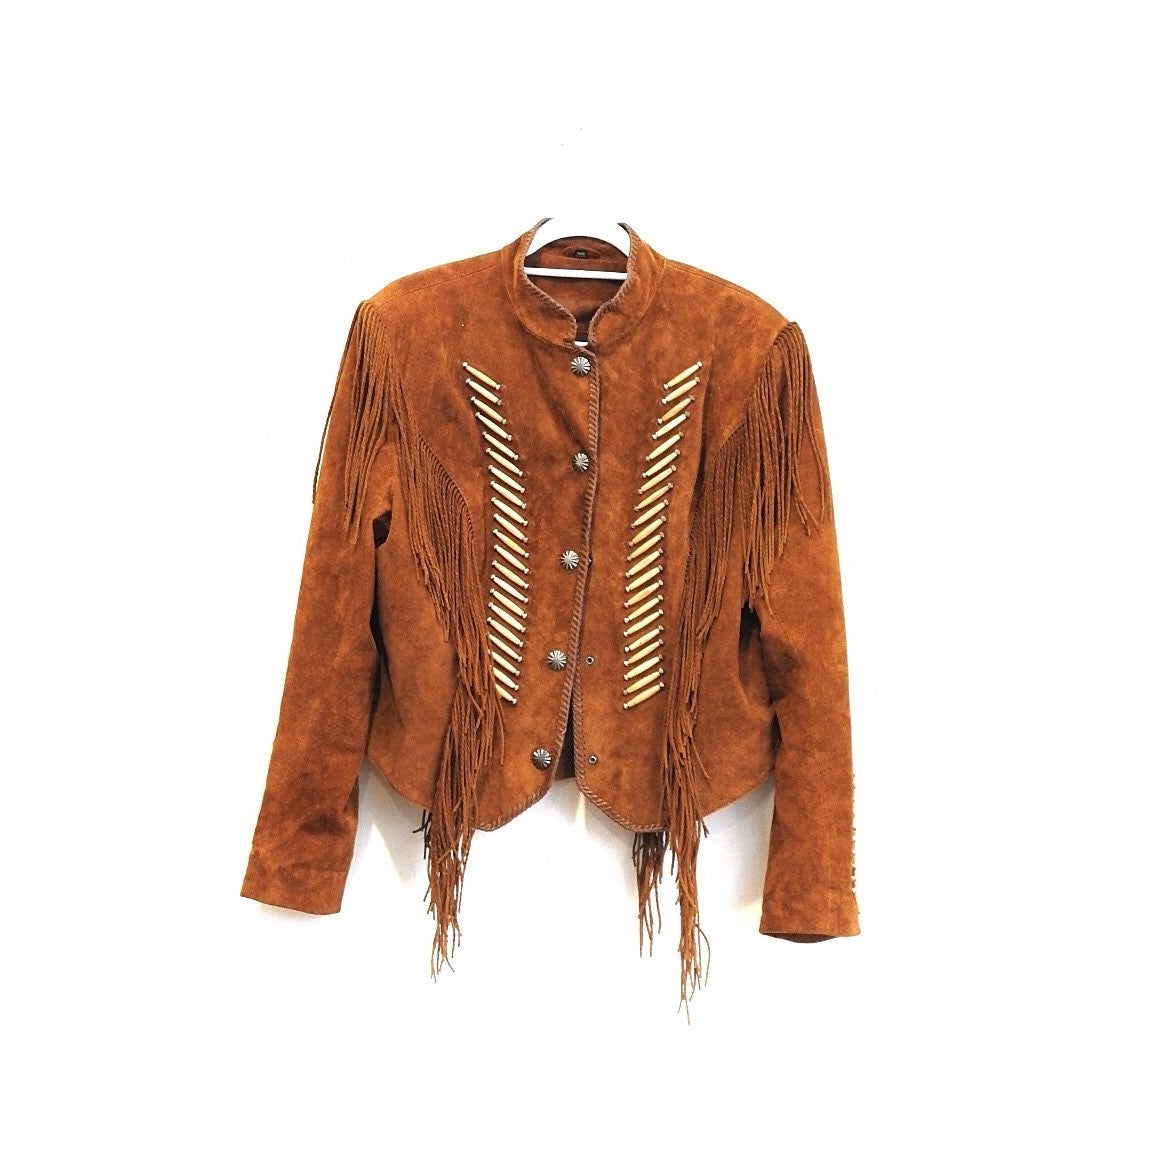 Cripple Creek Fringe Leather Jacket